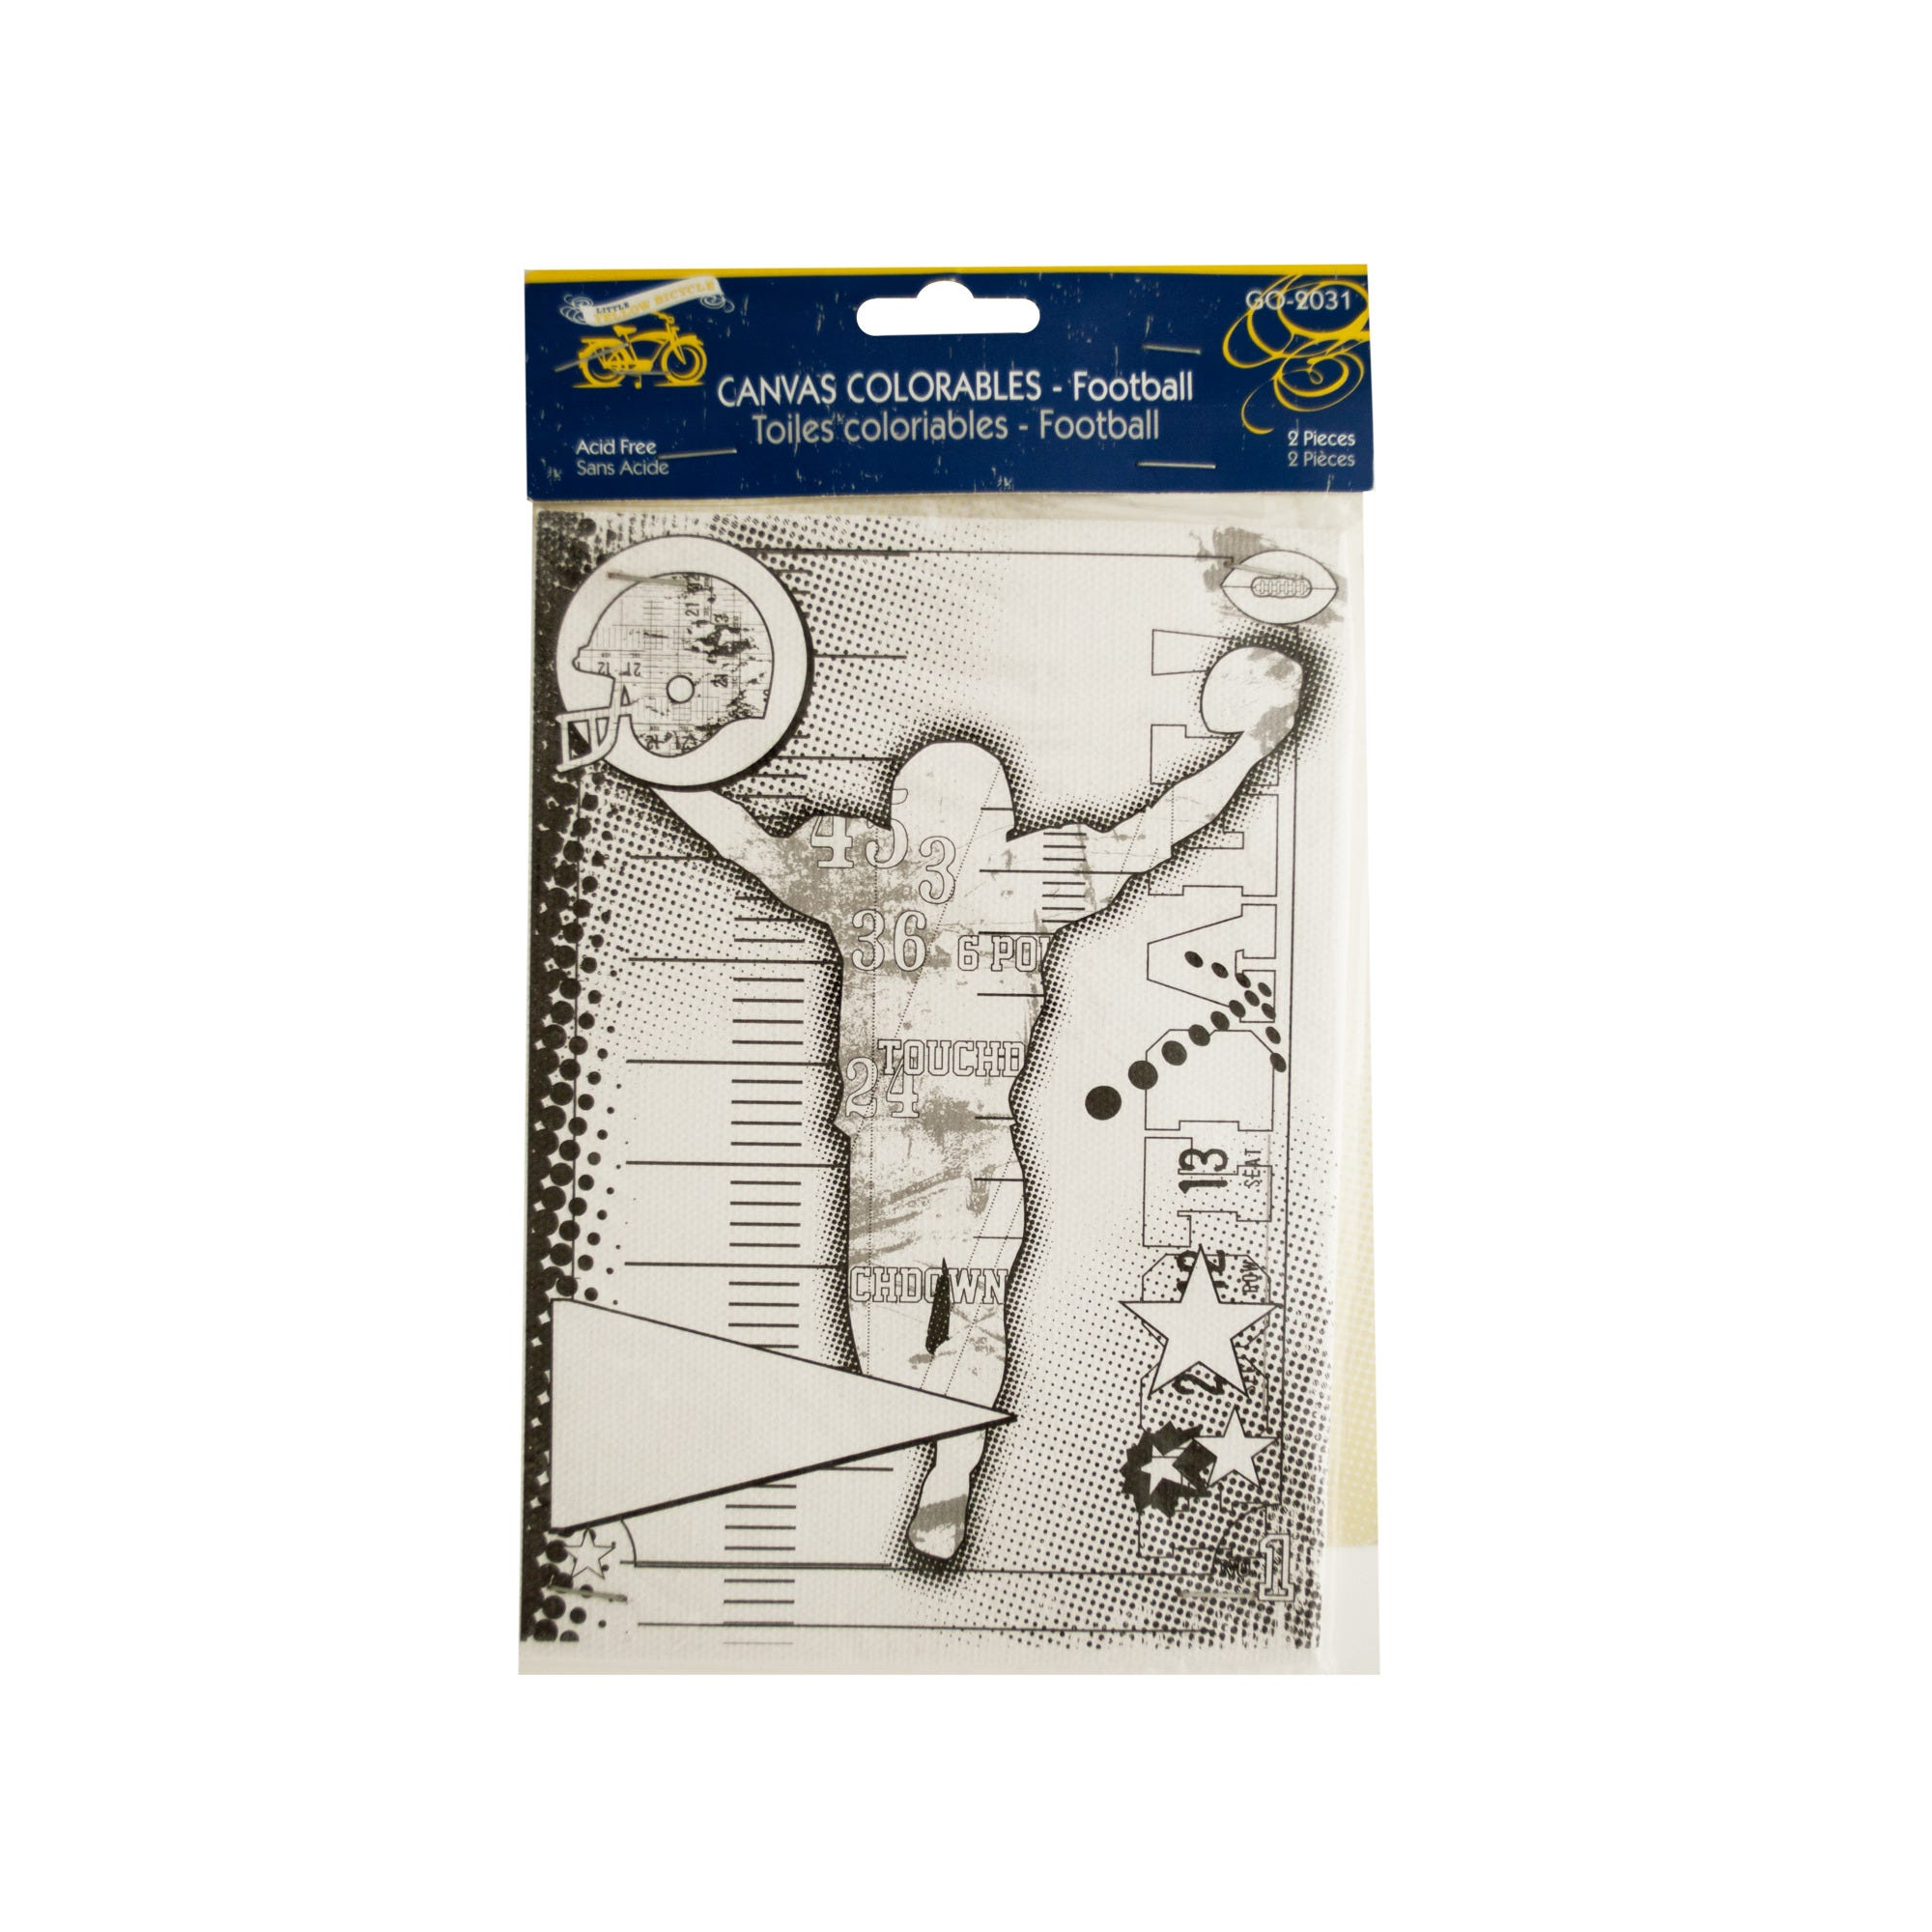 FOOTBALL-canvas-colorable